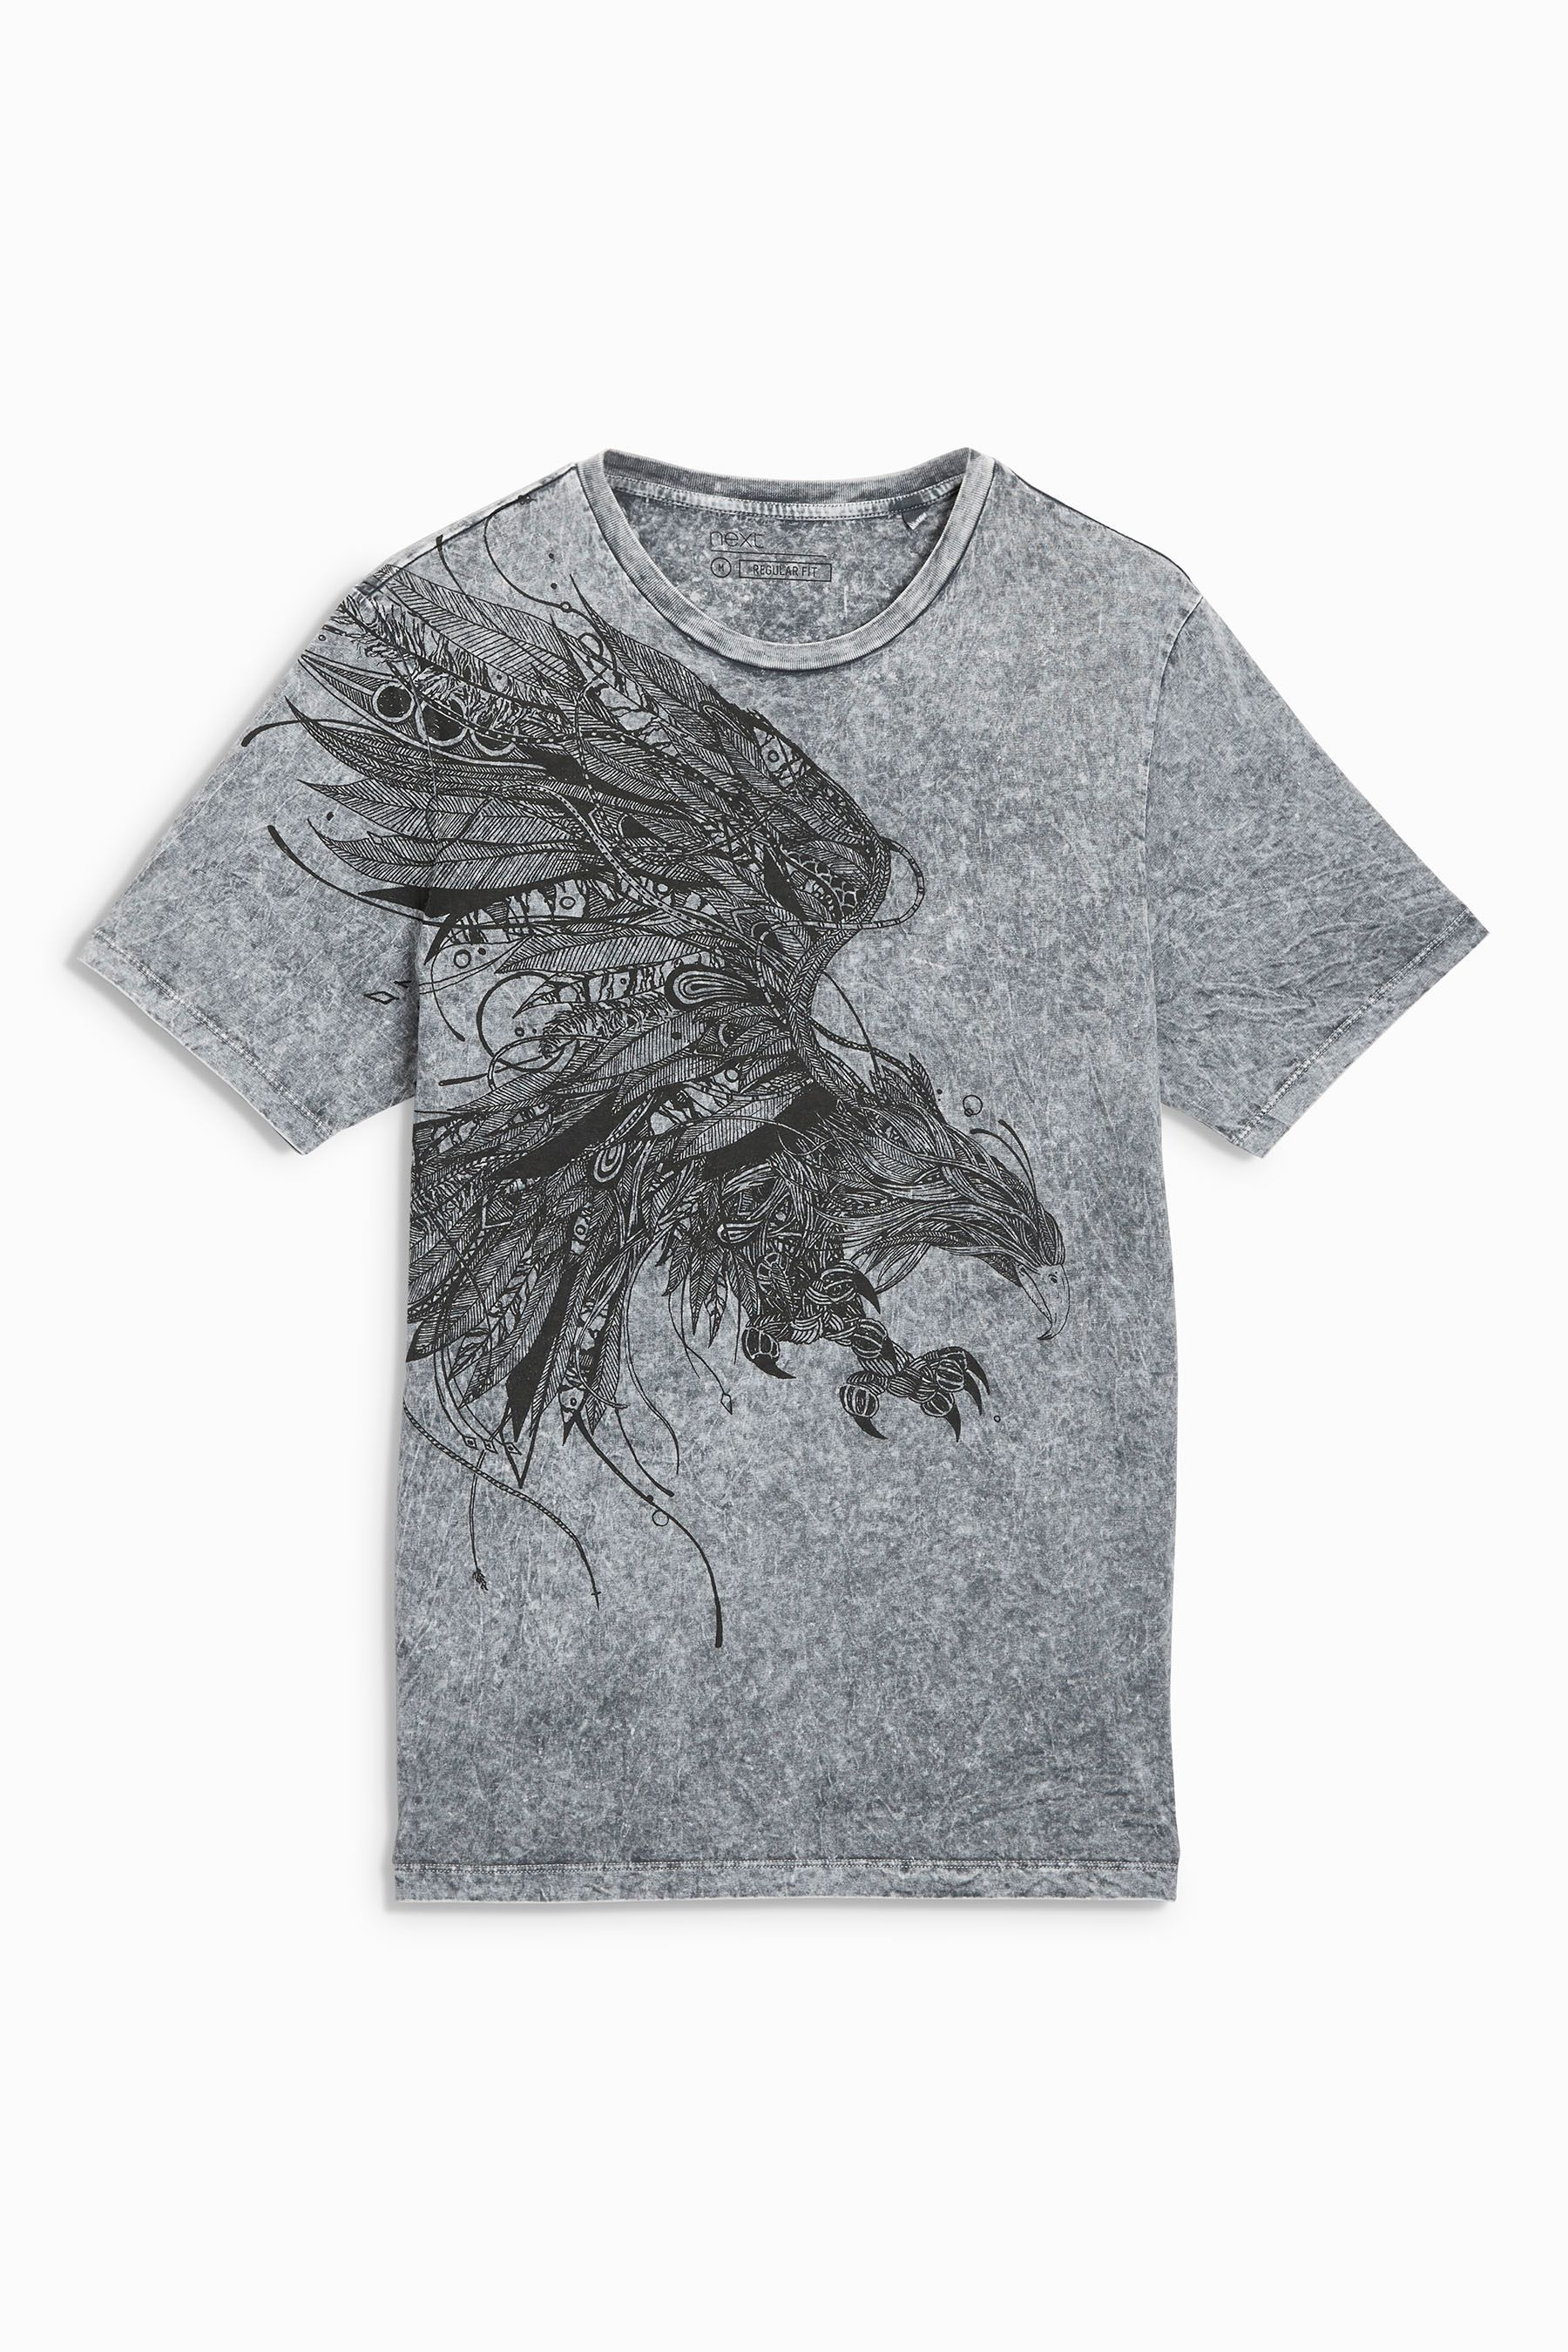 cf59aecf22 Buy Eagle Acid Wash T-Shirt from the Next UK online shop